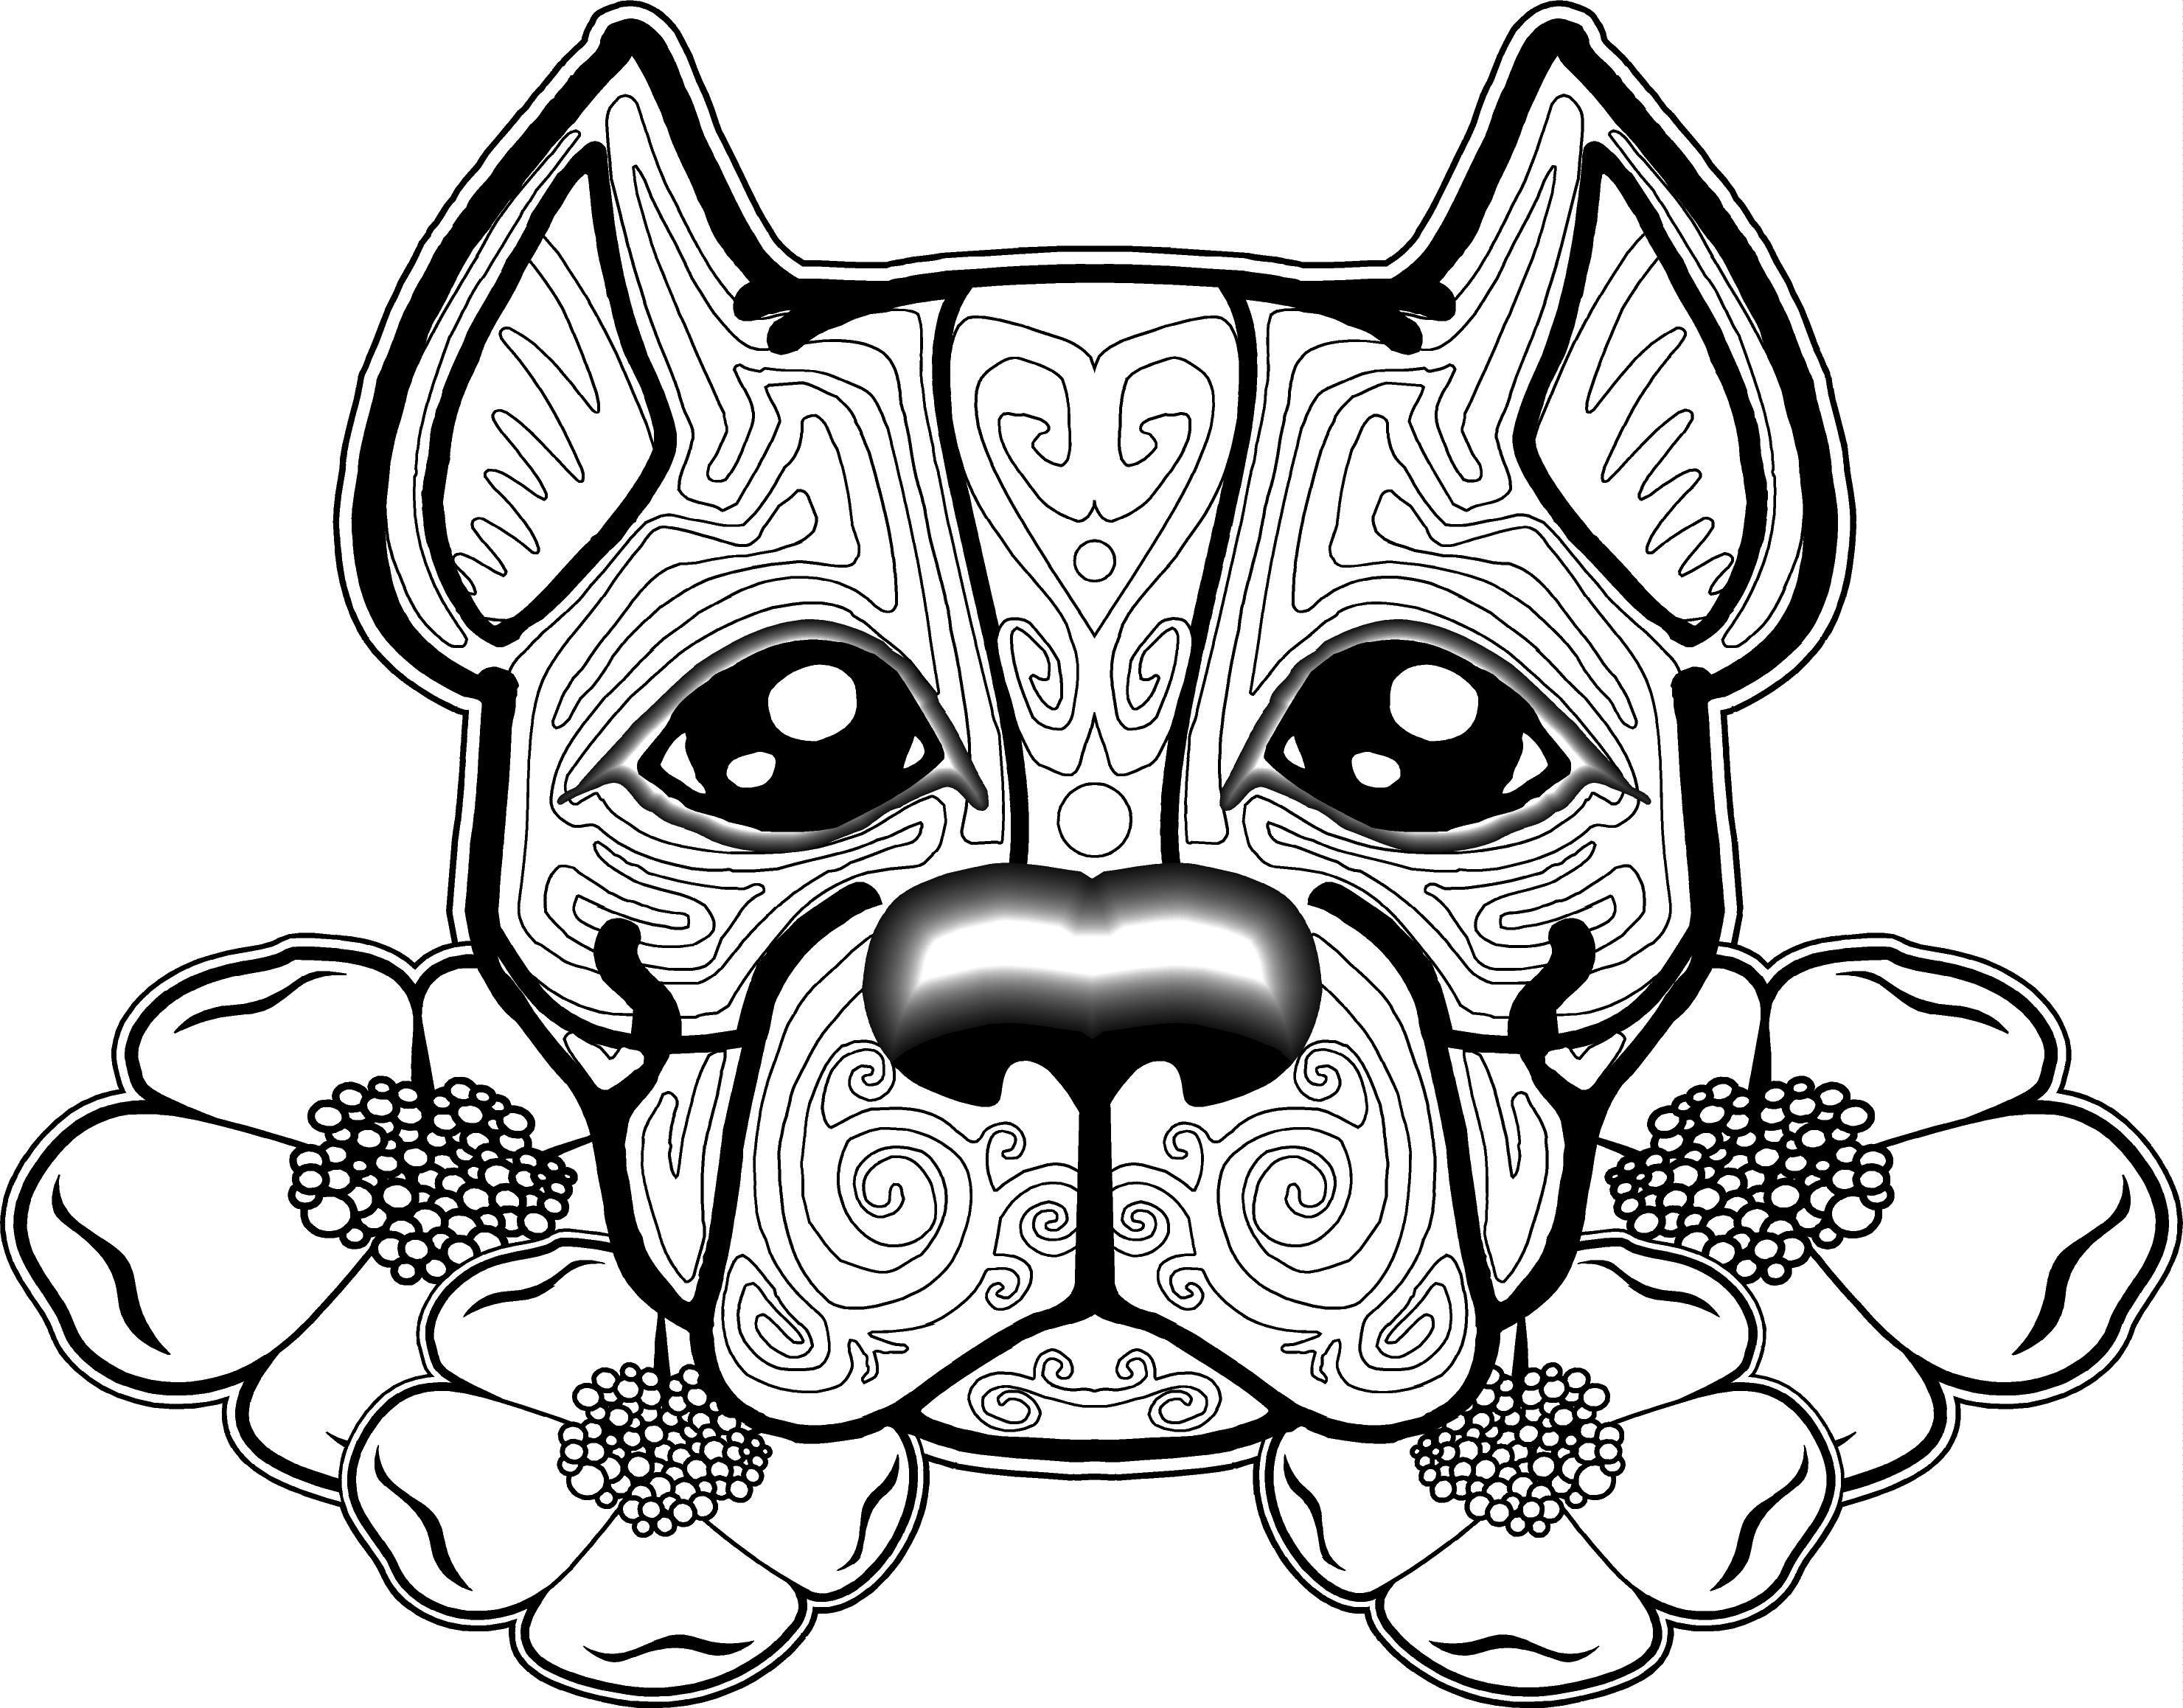 Printable Dog Coloring Pages Ideas For Kids Dog coloring